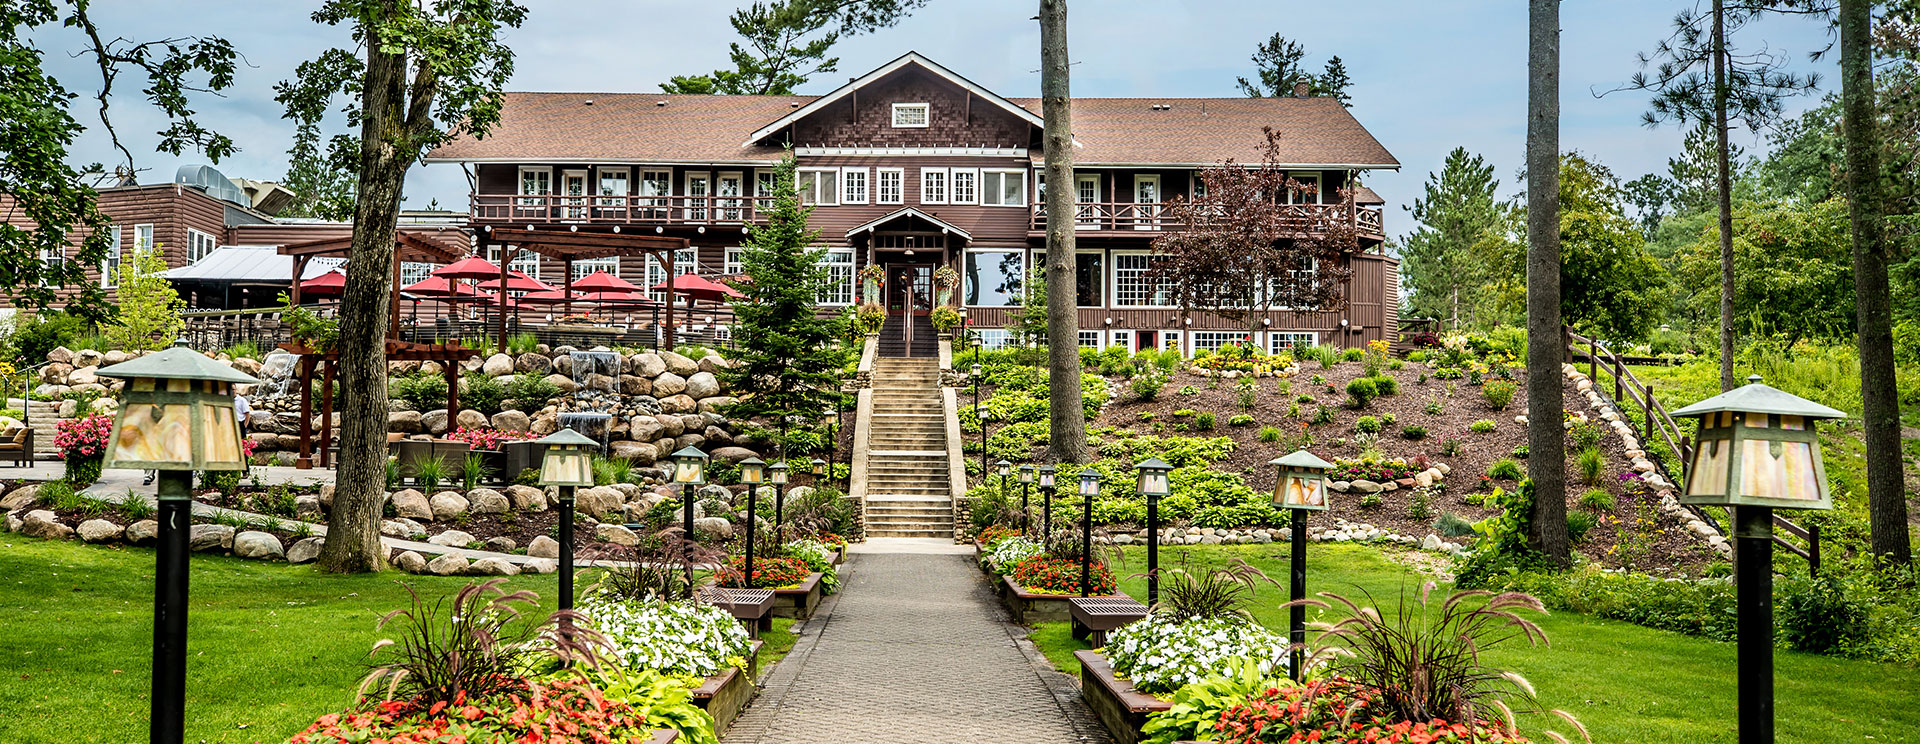 Top 10 Summer Things to do at Grand View Lodge